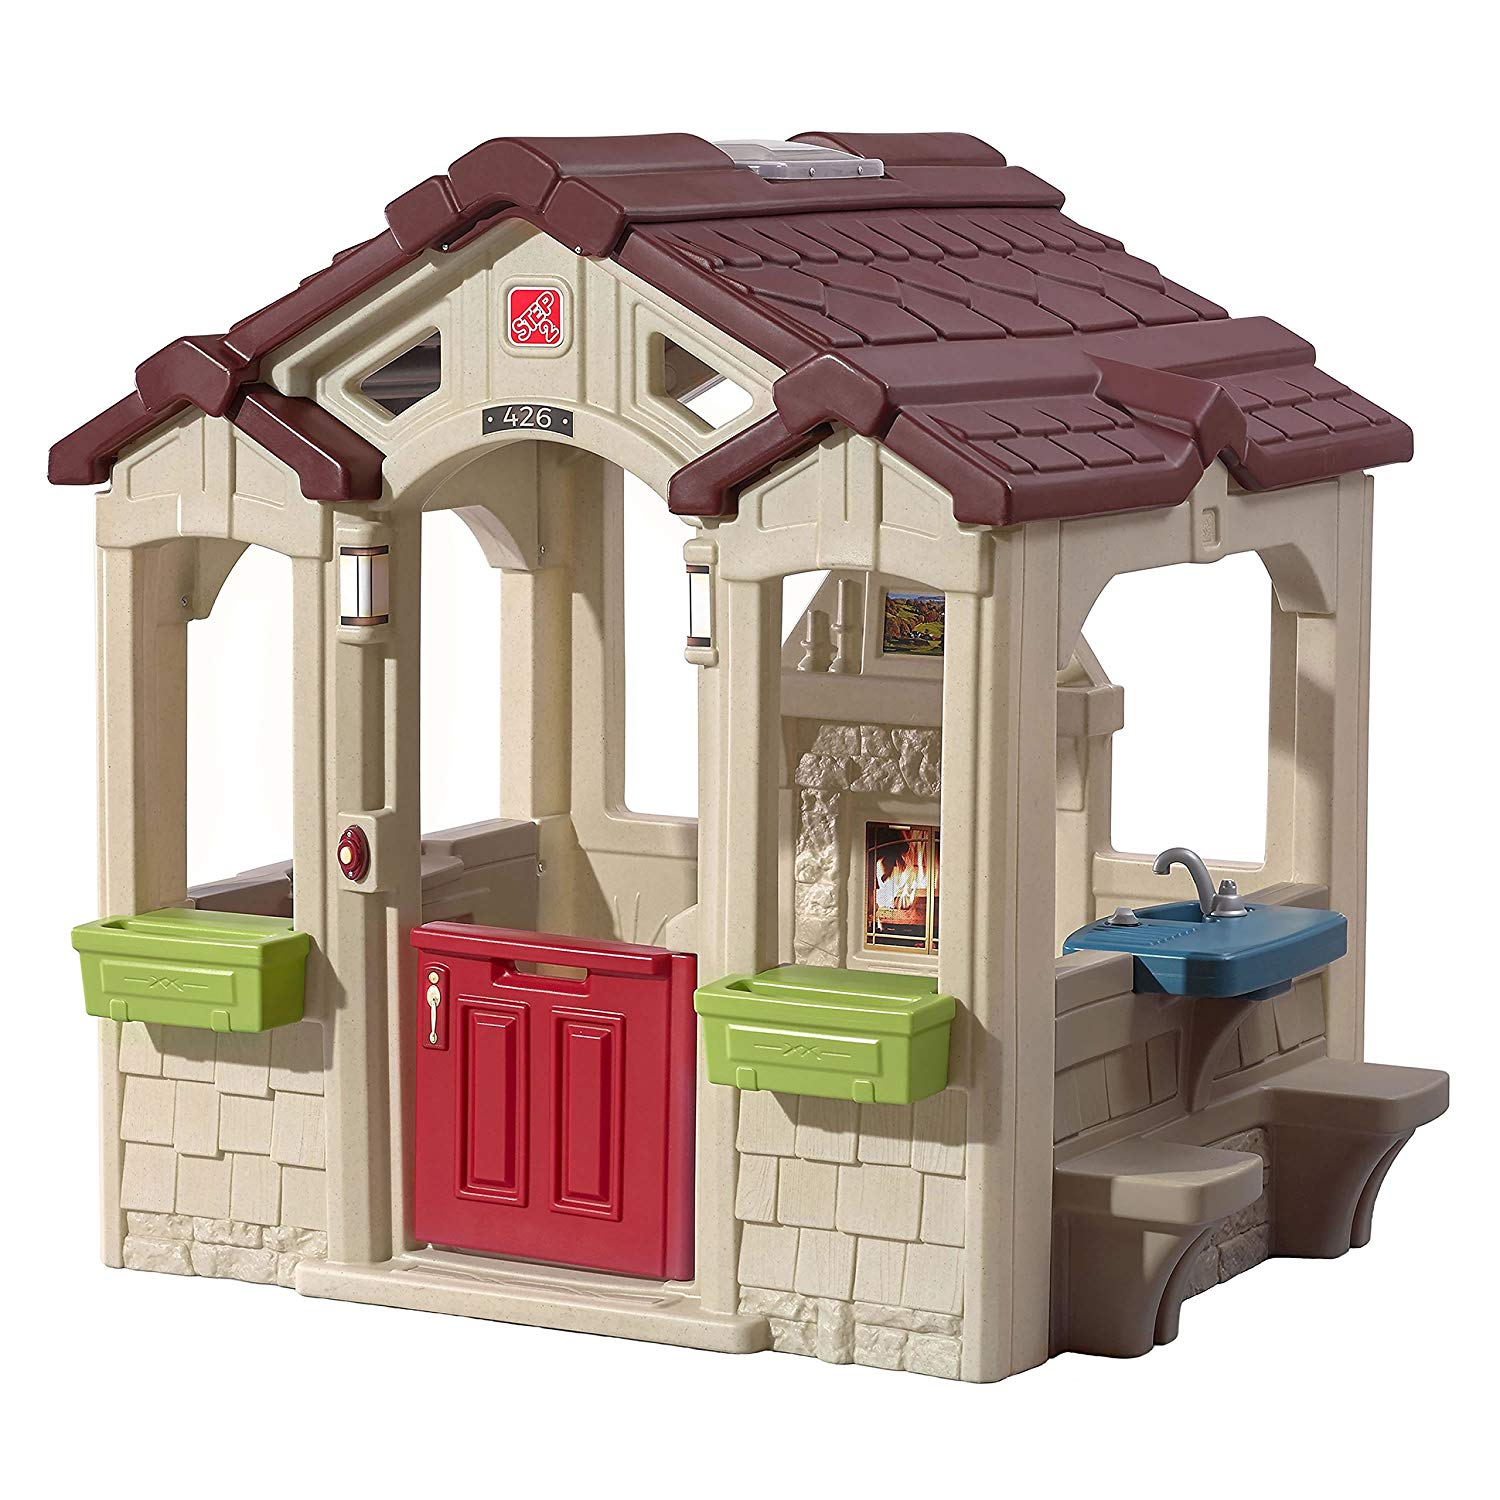 playhouse-  outdoor toys - best toys for 3 year olds.jpg